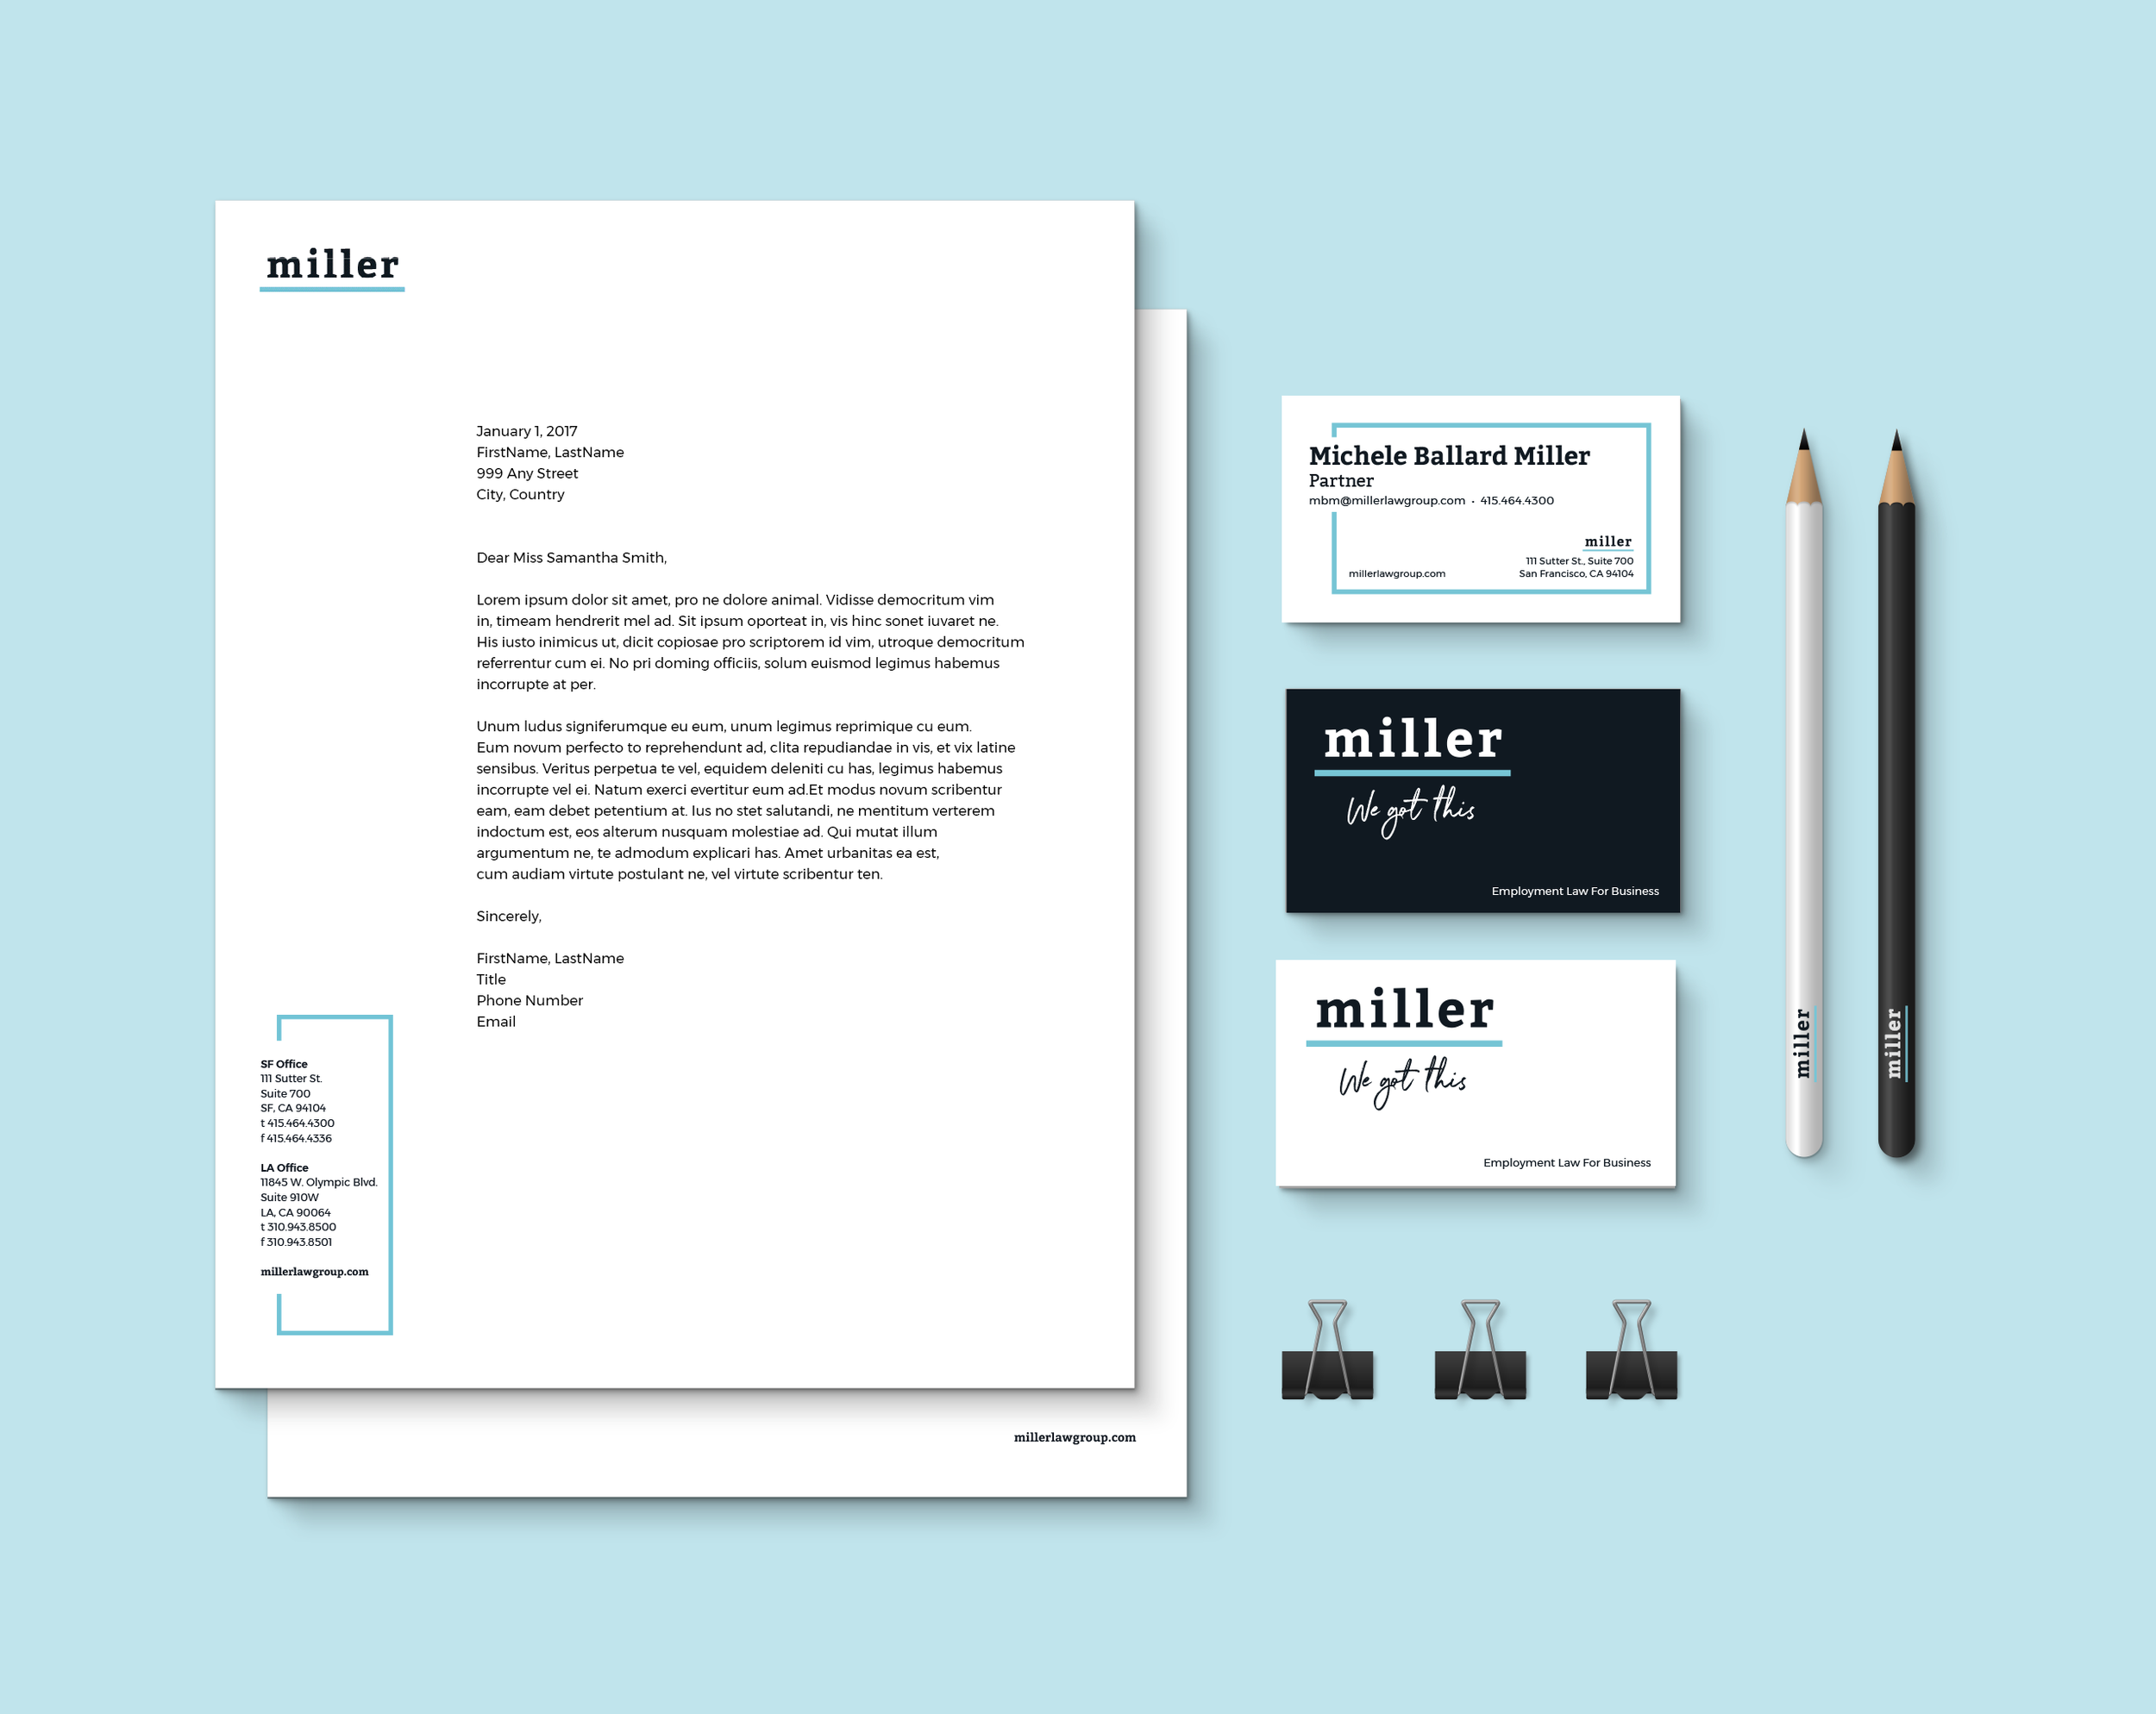 Miller Identity System:  Our business card and letterhead designs were inspired by Miller's bold, yet pragmatic, approach to employment law.